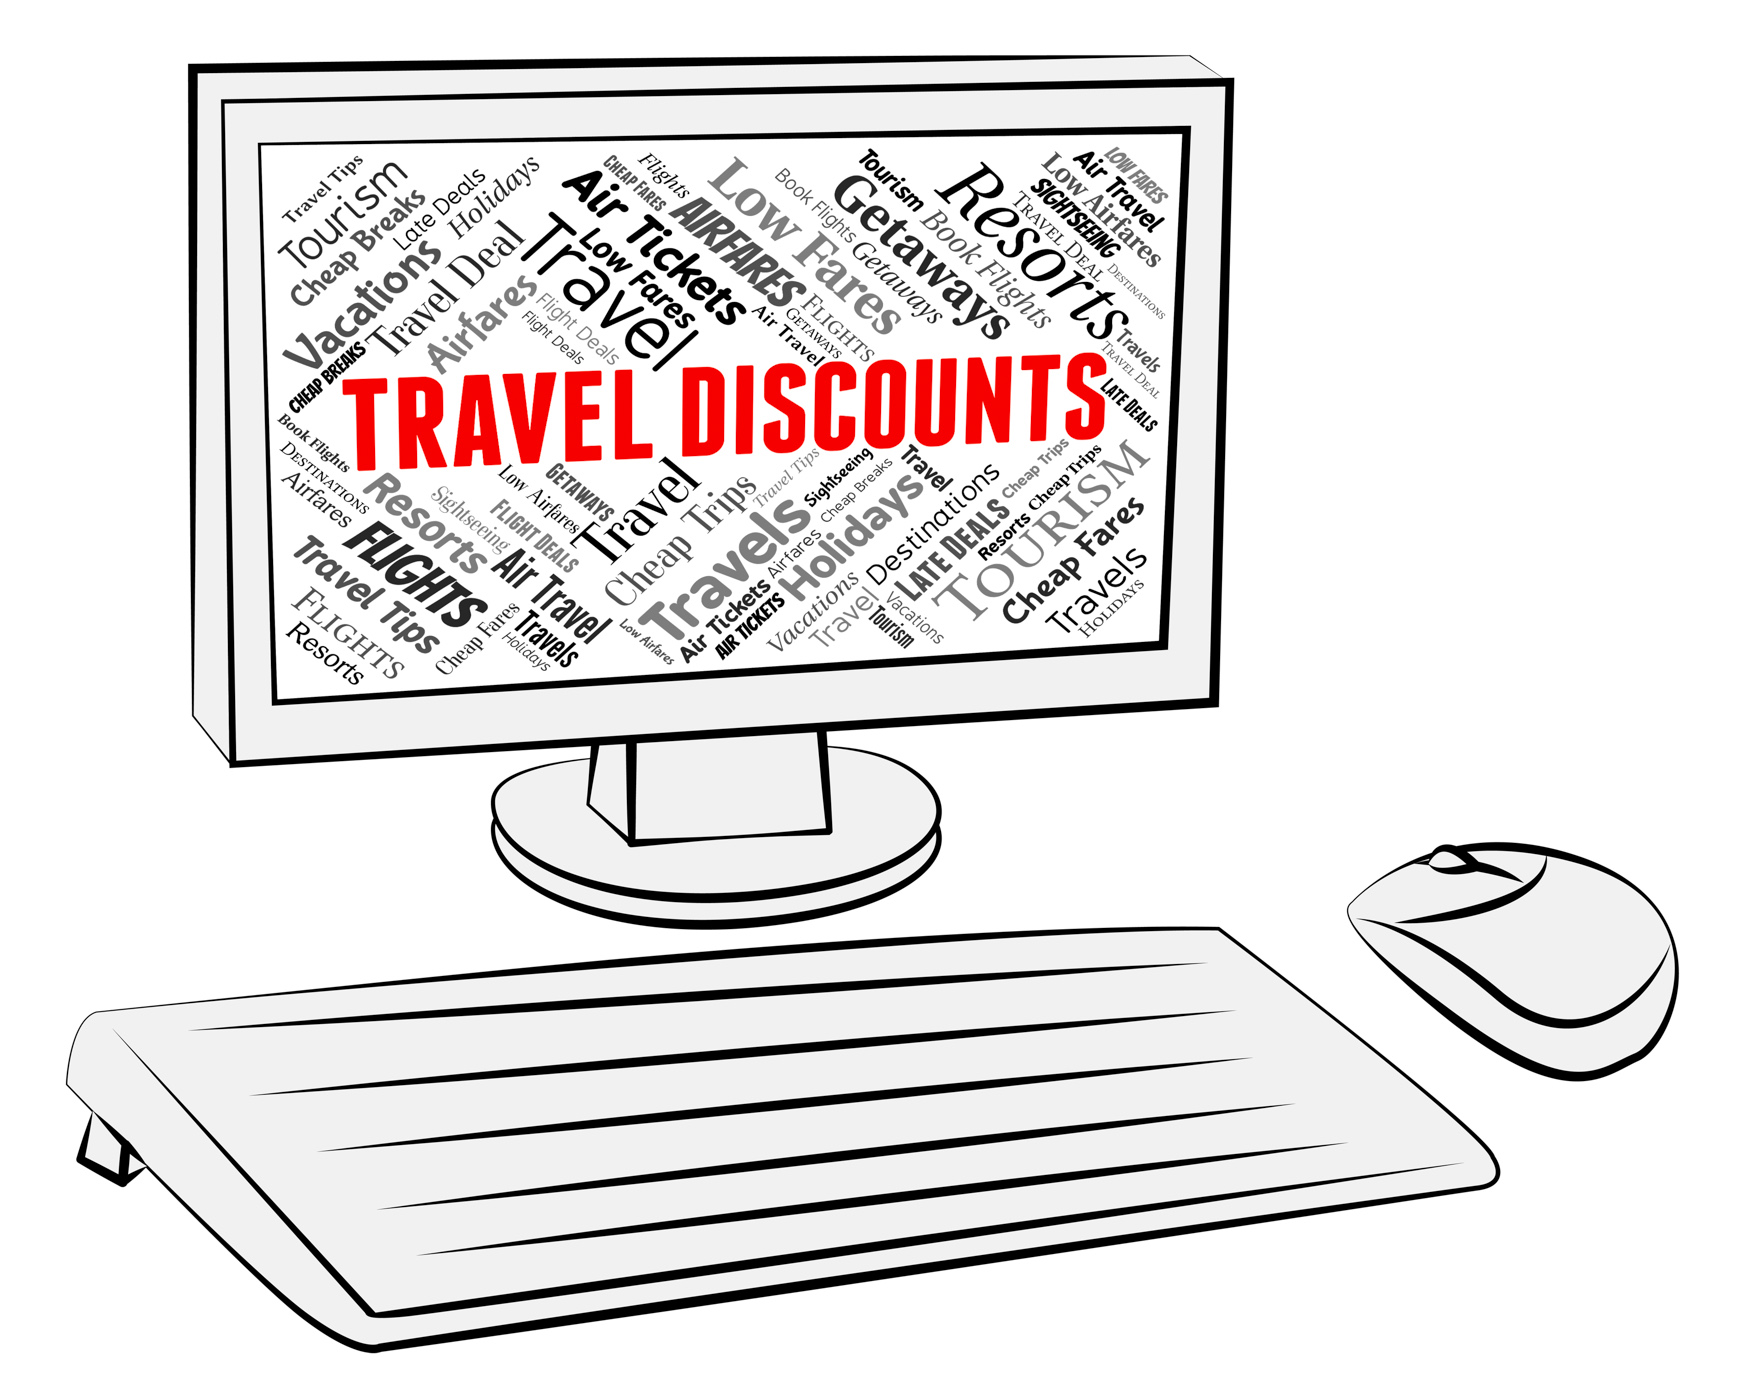 Travel Discounts Represents Travelling Vacations And Bargains, Bargain, Traveldiscounts, Promotional, Reduction, HQ Photo